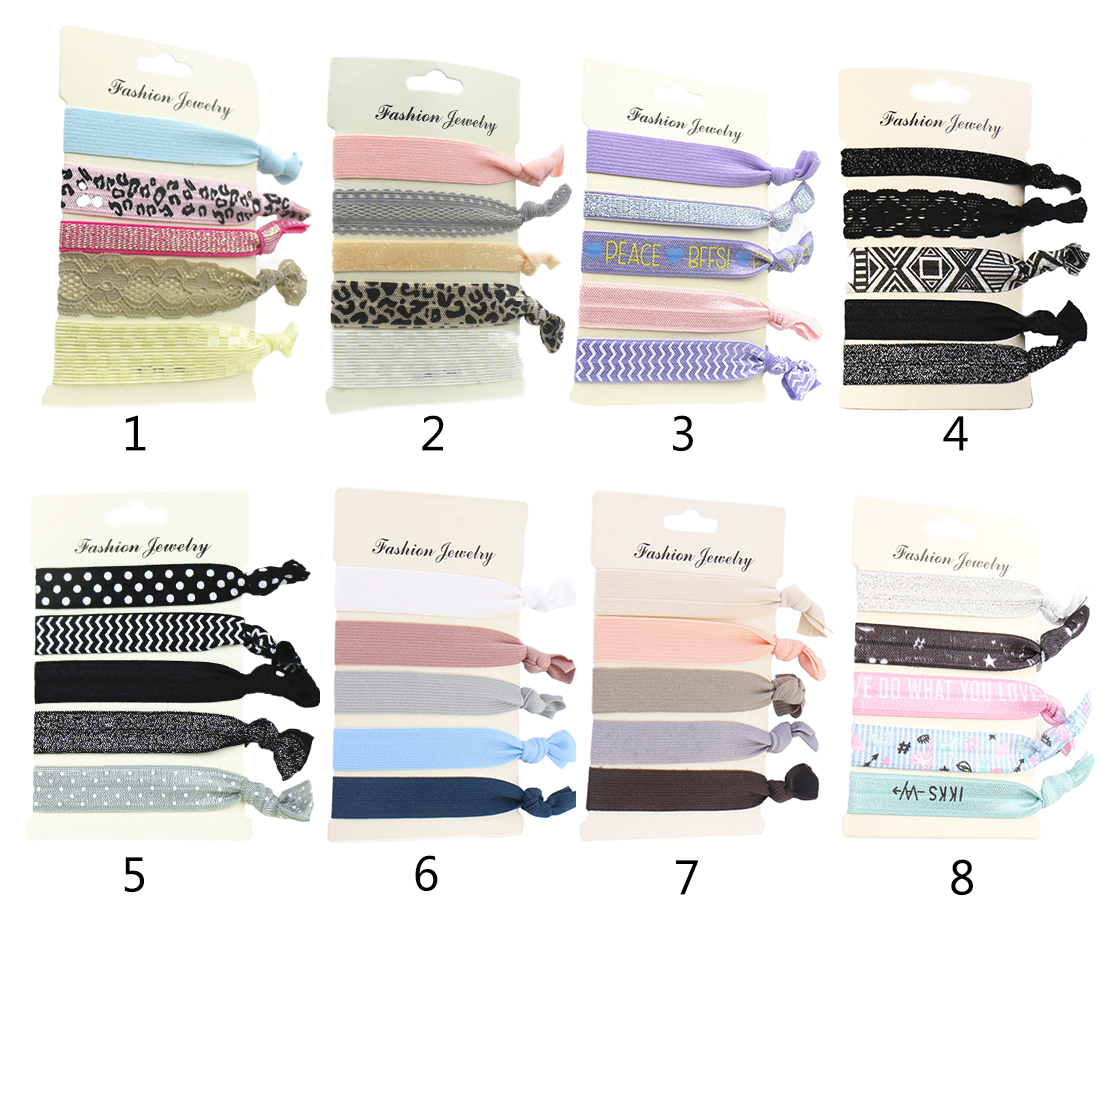 5PCS/Pack Women's Trendy Tassel Elastic Hairband Bowknot Hand Band For Girls Hair Ties   Headwear   Tie Gum Hair Accessories